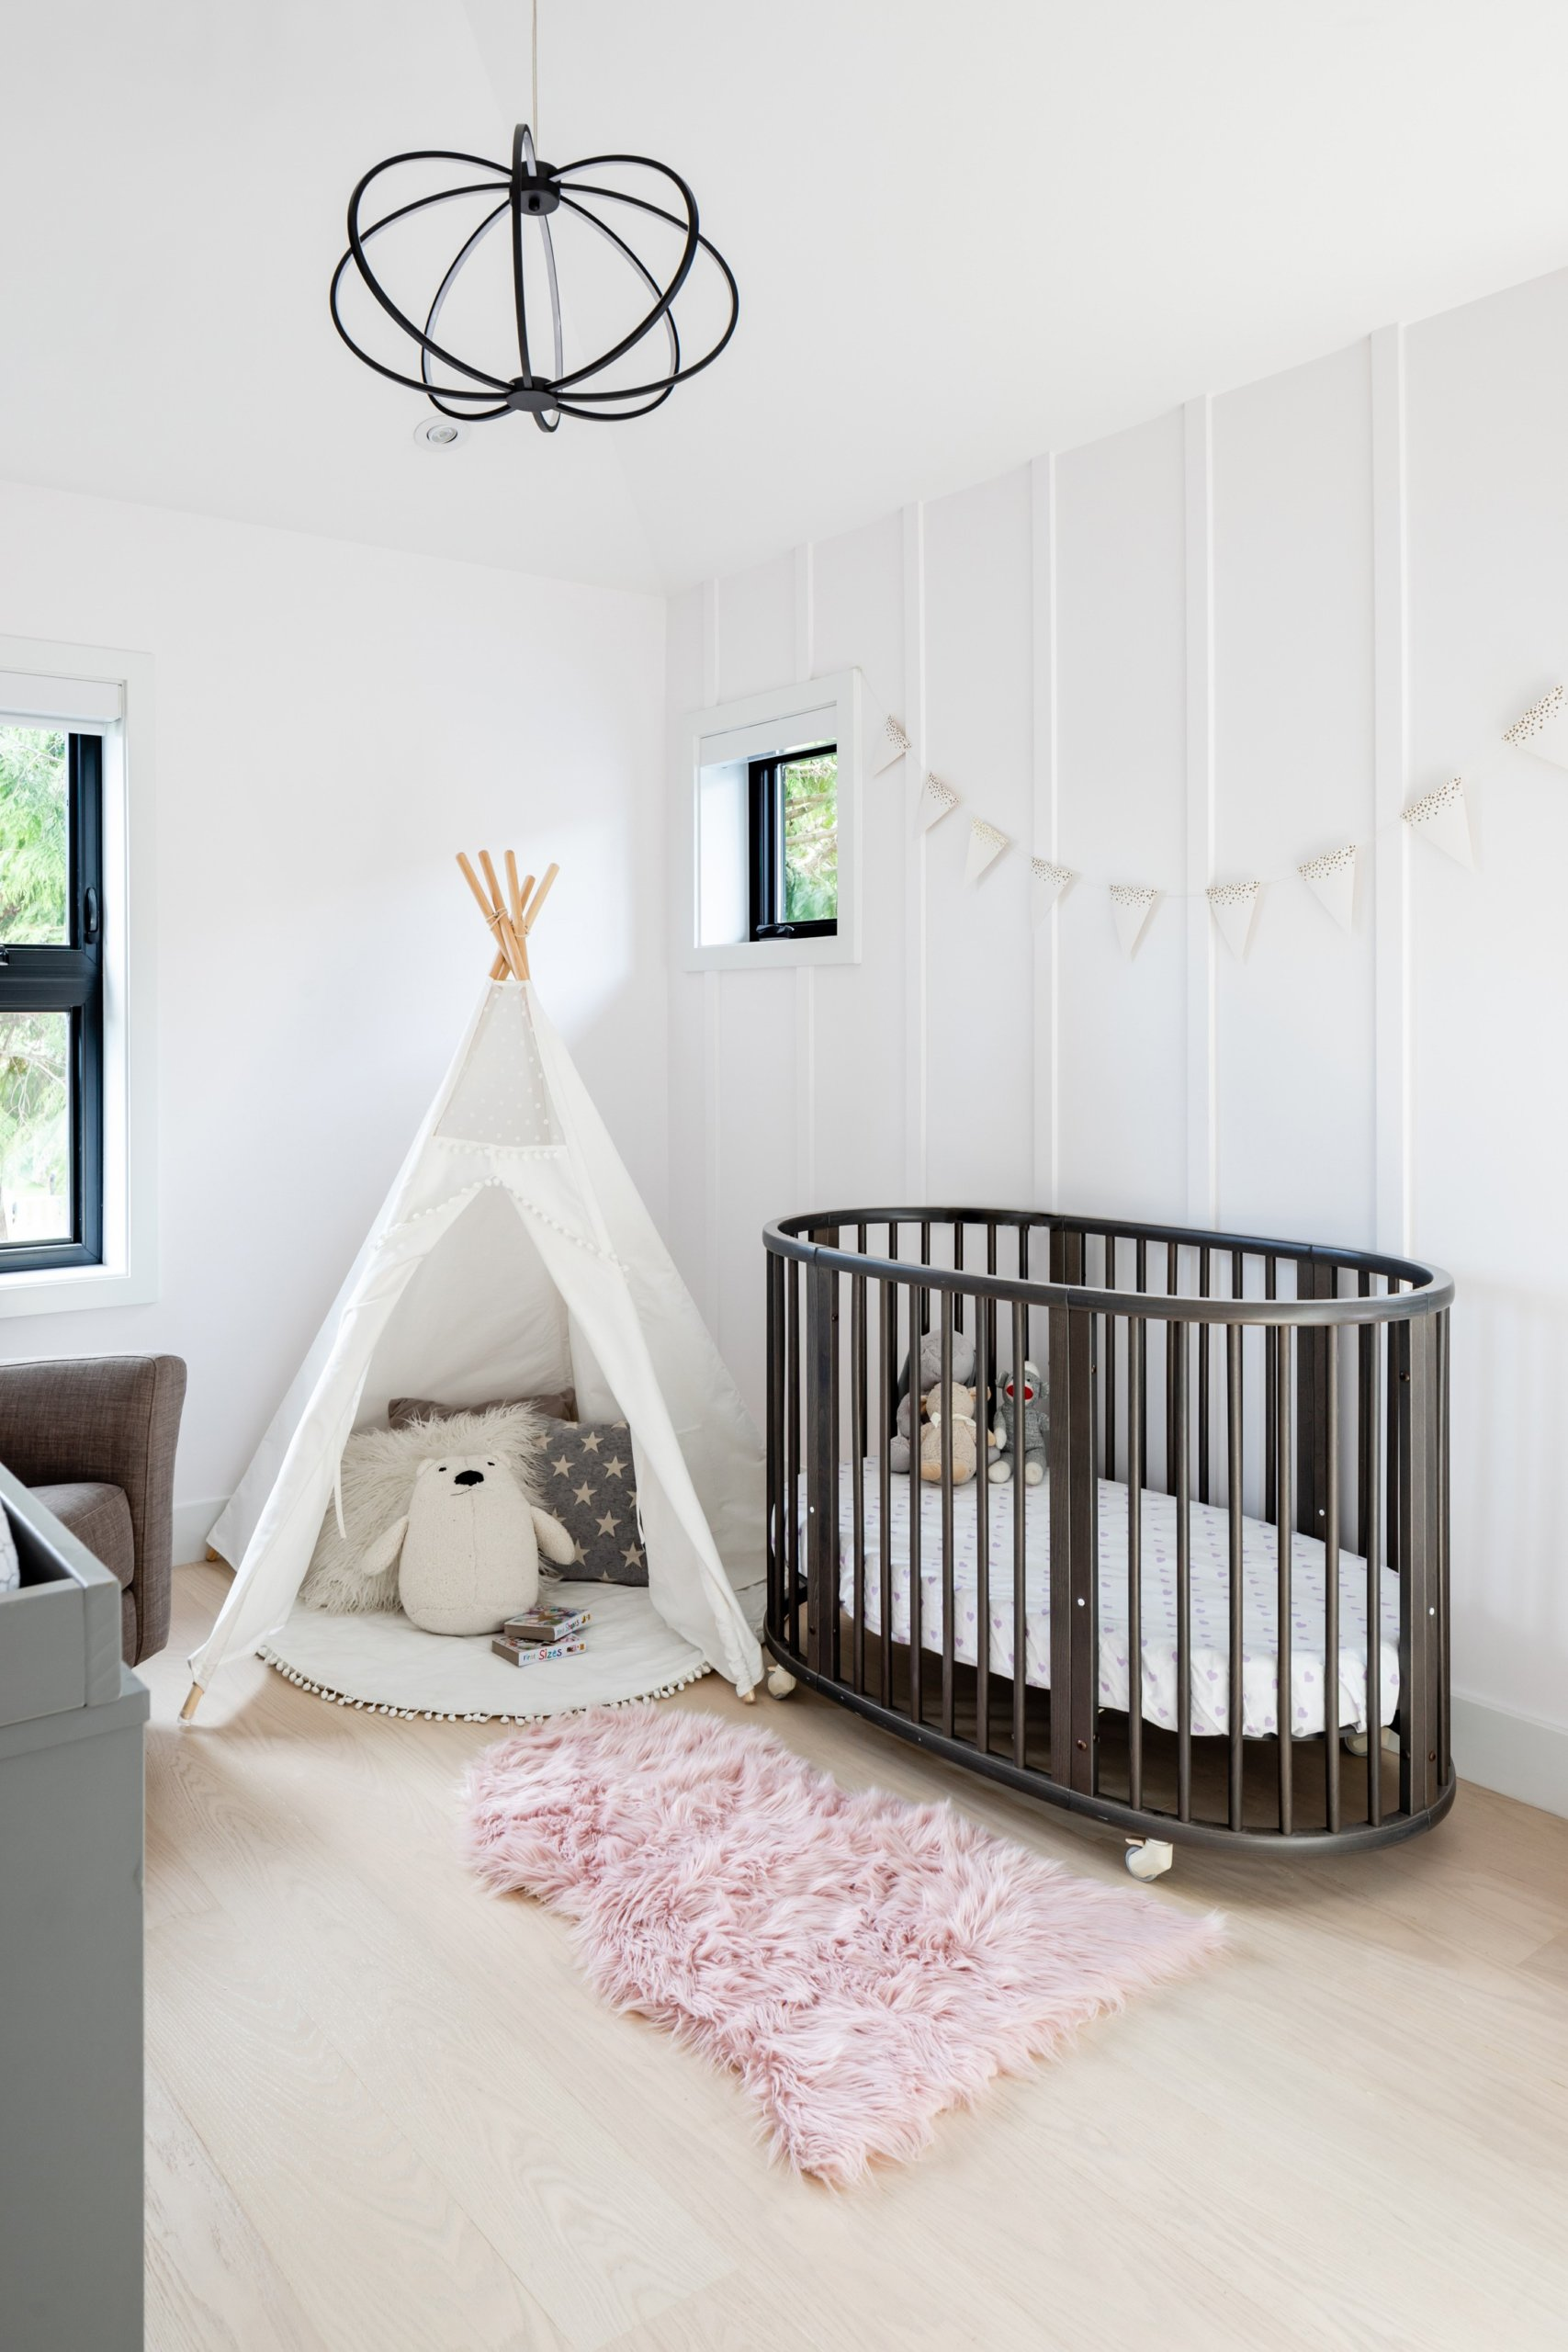 Stylish shabby chic girls' nursery with Scandinavian style and ample natural light